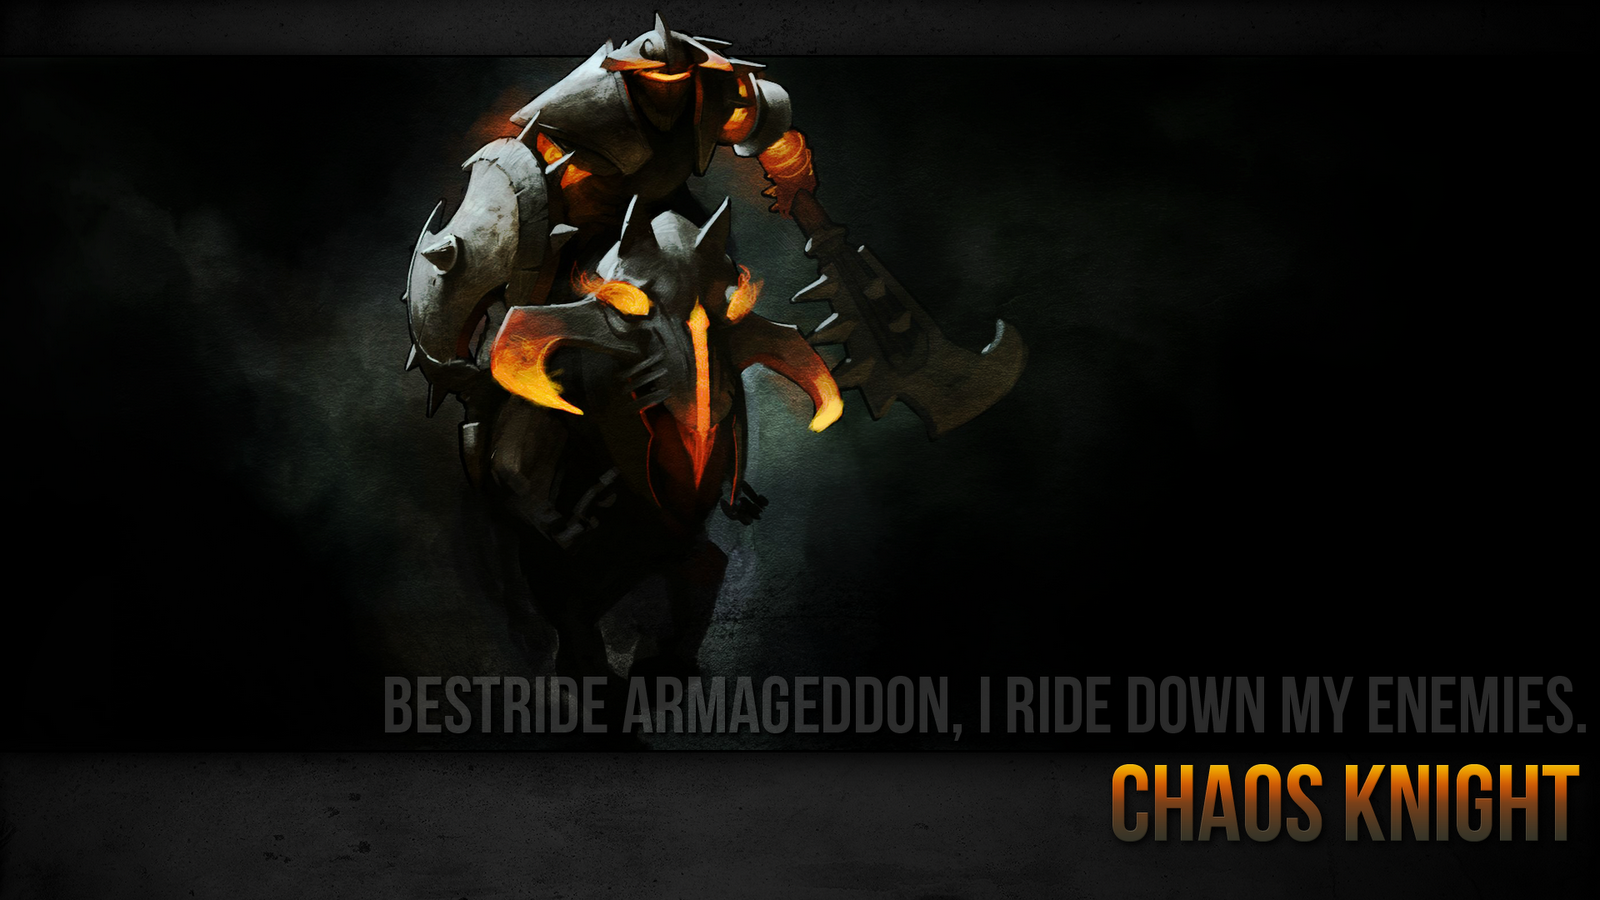 http://1.bp.blogspot.com/-AJvImlleAMo/UK8pBdDASuI/AAAAAAAAAxY/libxfaLhag8/s1600/chaos_knight_wallpaper_by_imkb-d5fzrp0.png